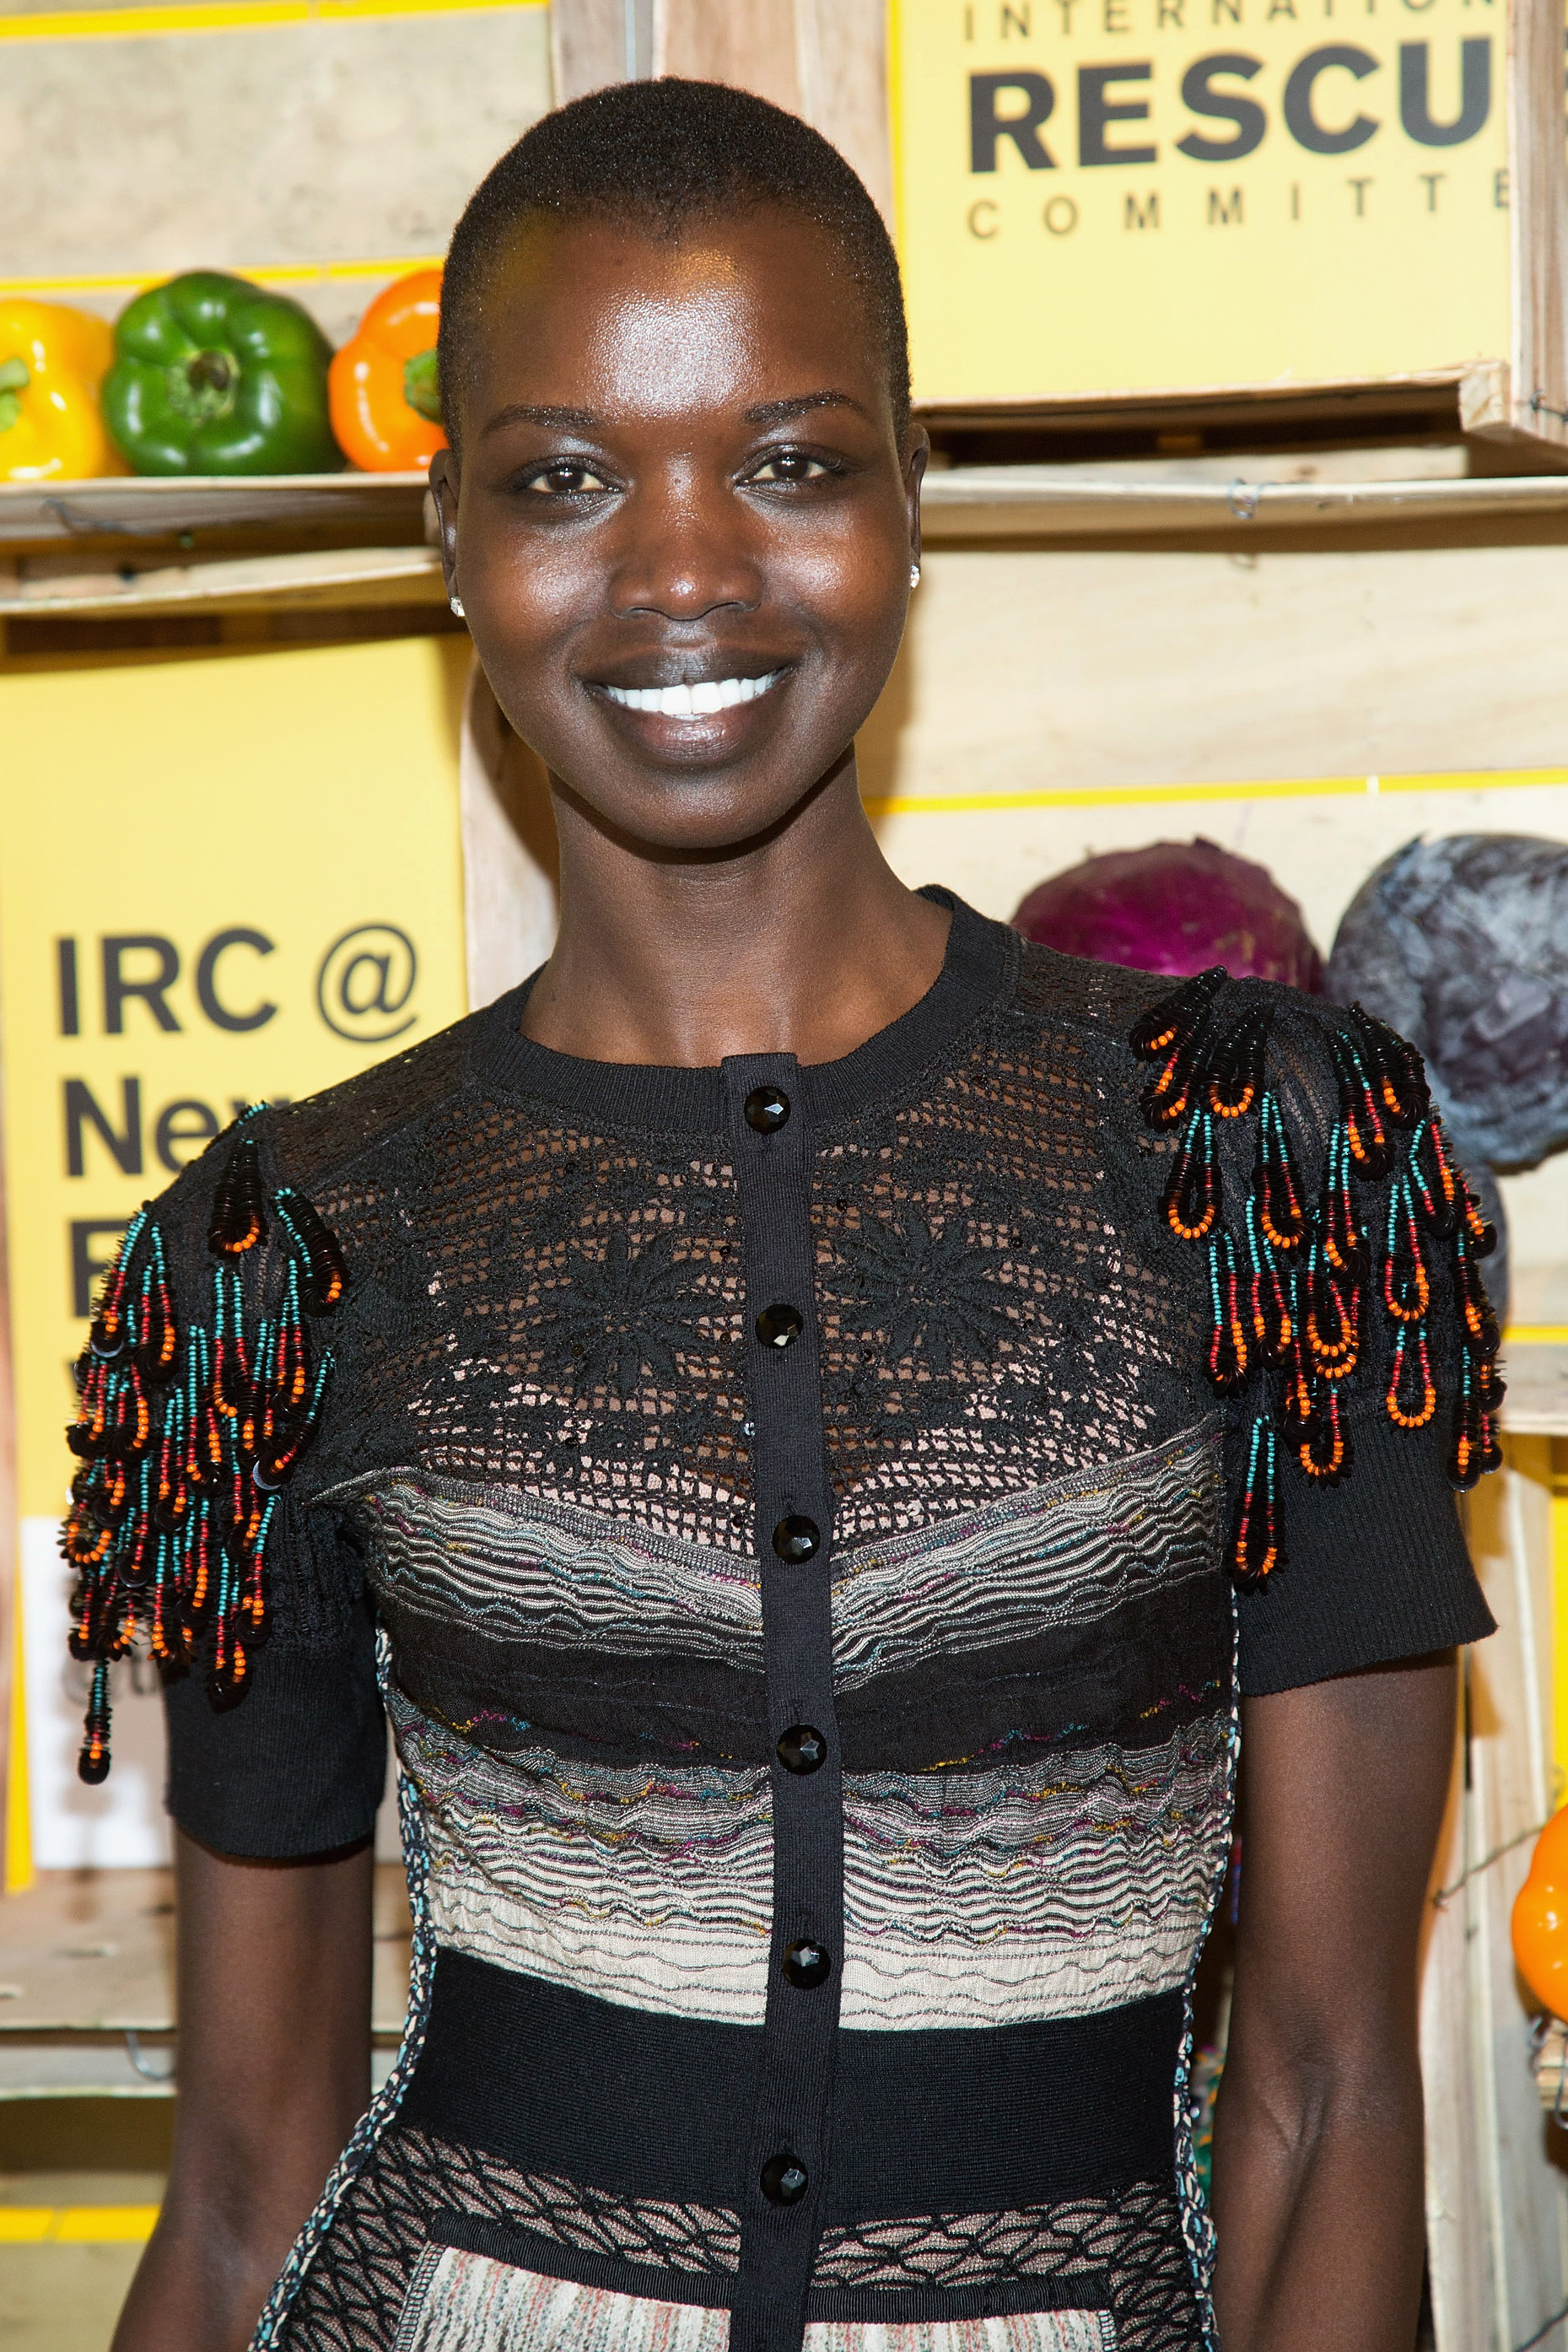 International Rescue Committee Hosts New York Fashion Week Pop-Up Featuring Chef Marco Canora's Bone Broth and Photo Exhibit from IRC Voice Nykhor Paul - Day 1